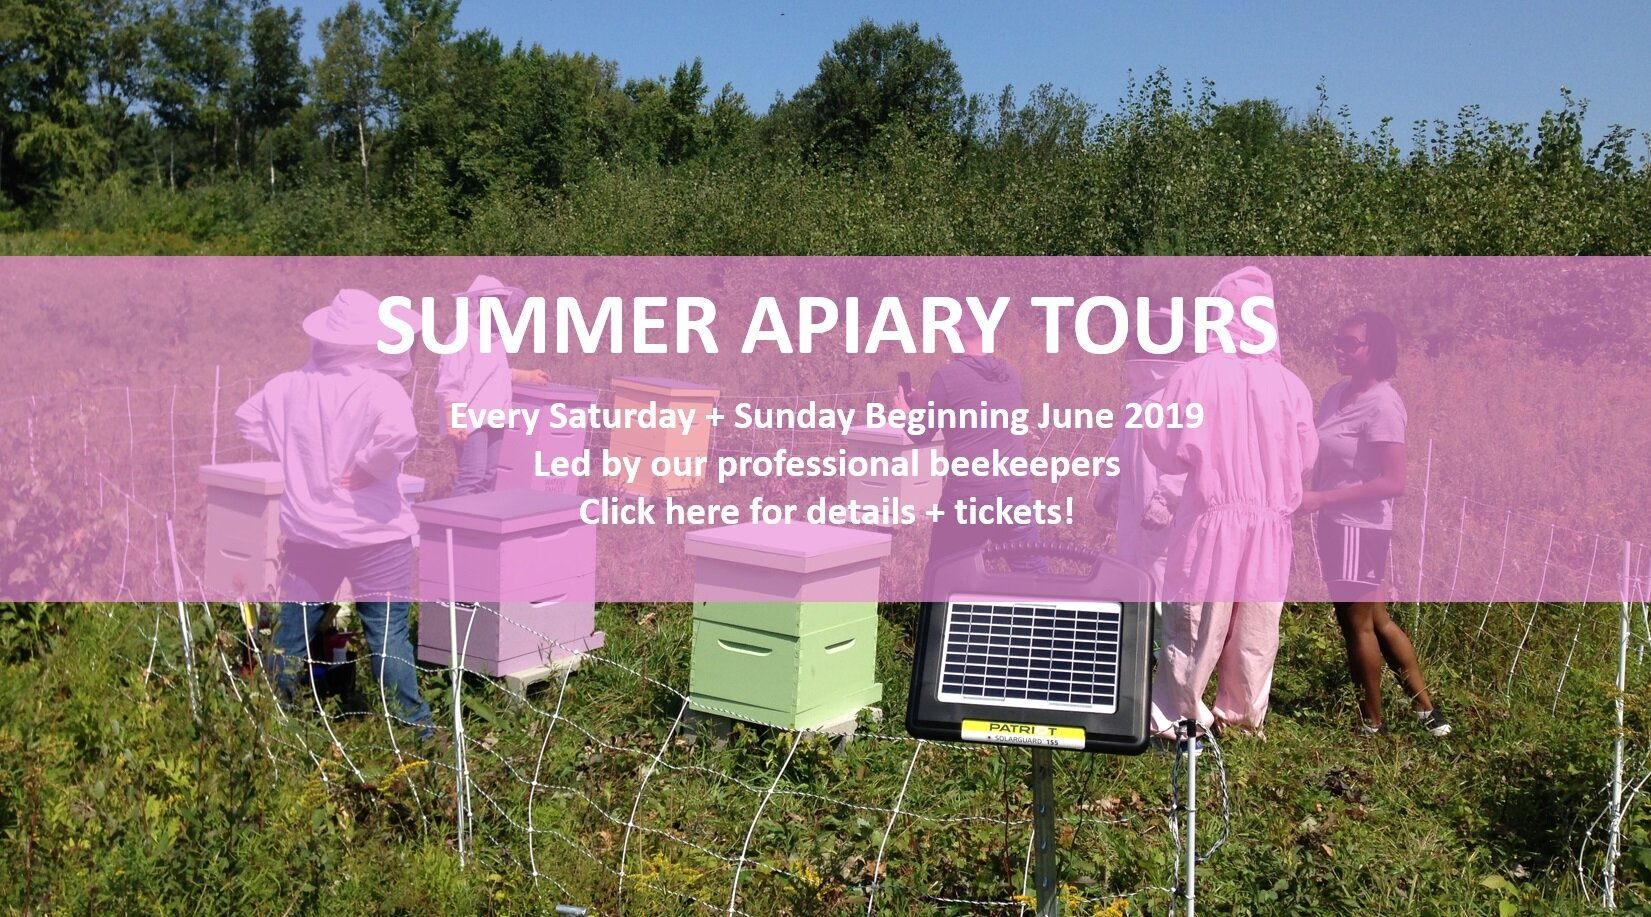 APIARY TOURS PICTURE.jpg